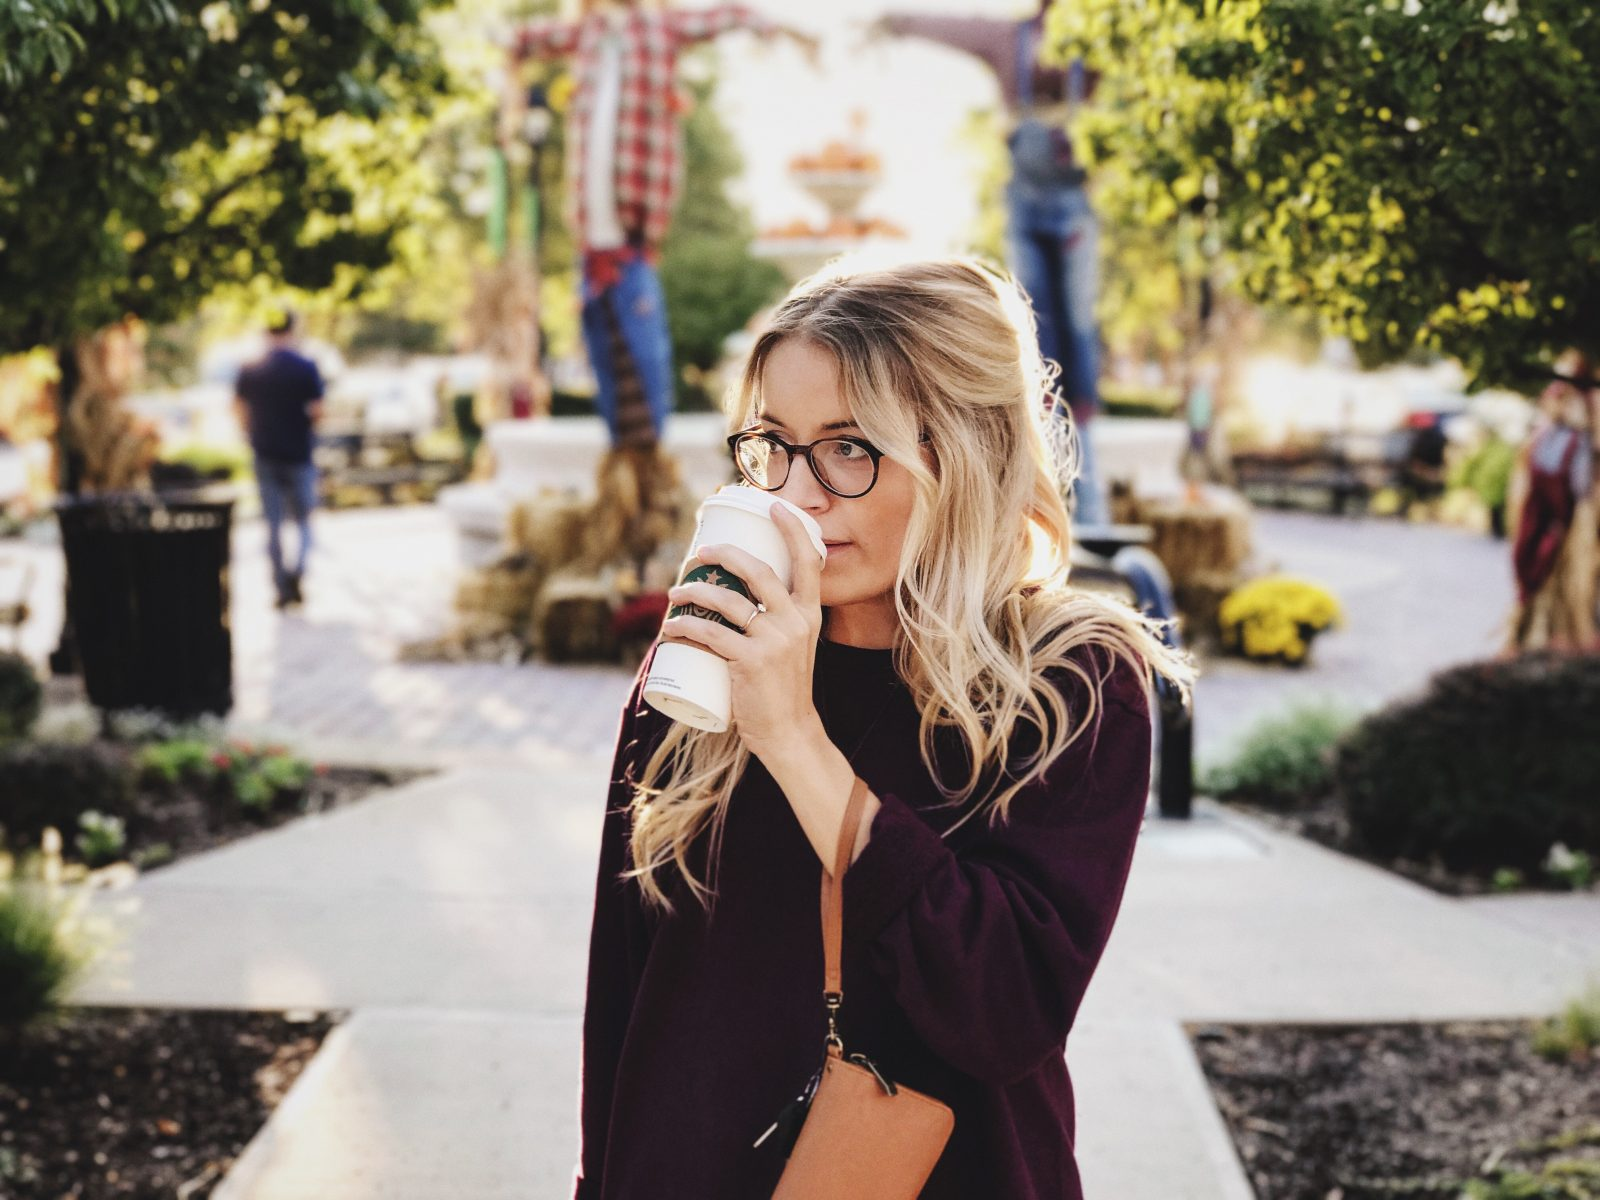 woman drinking starbucks on campus